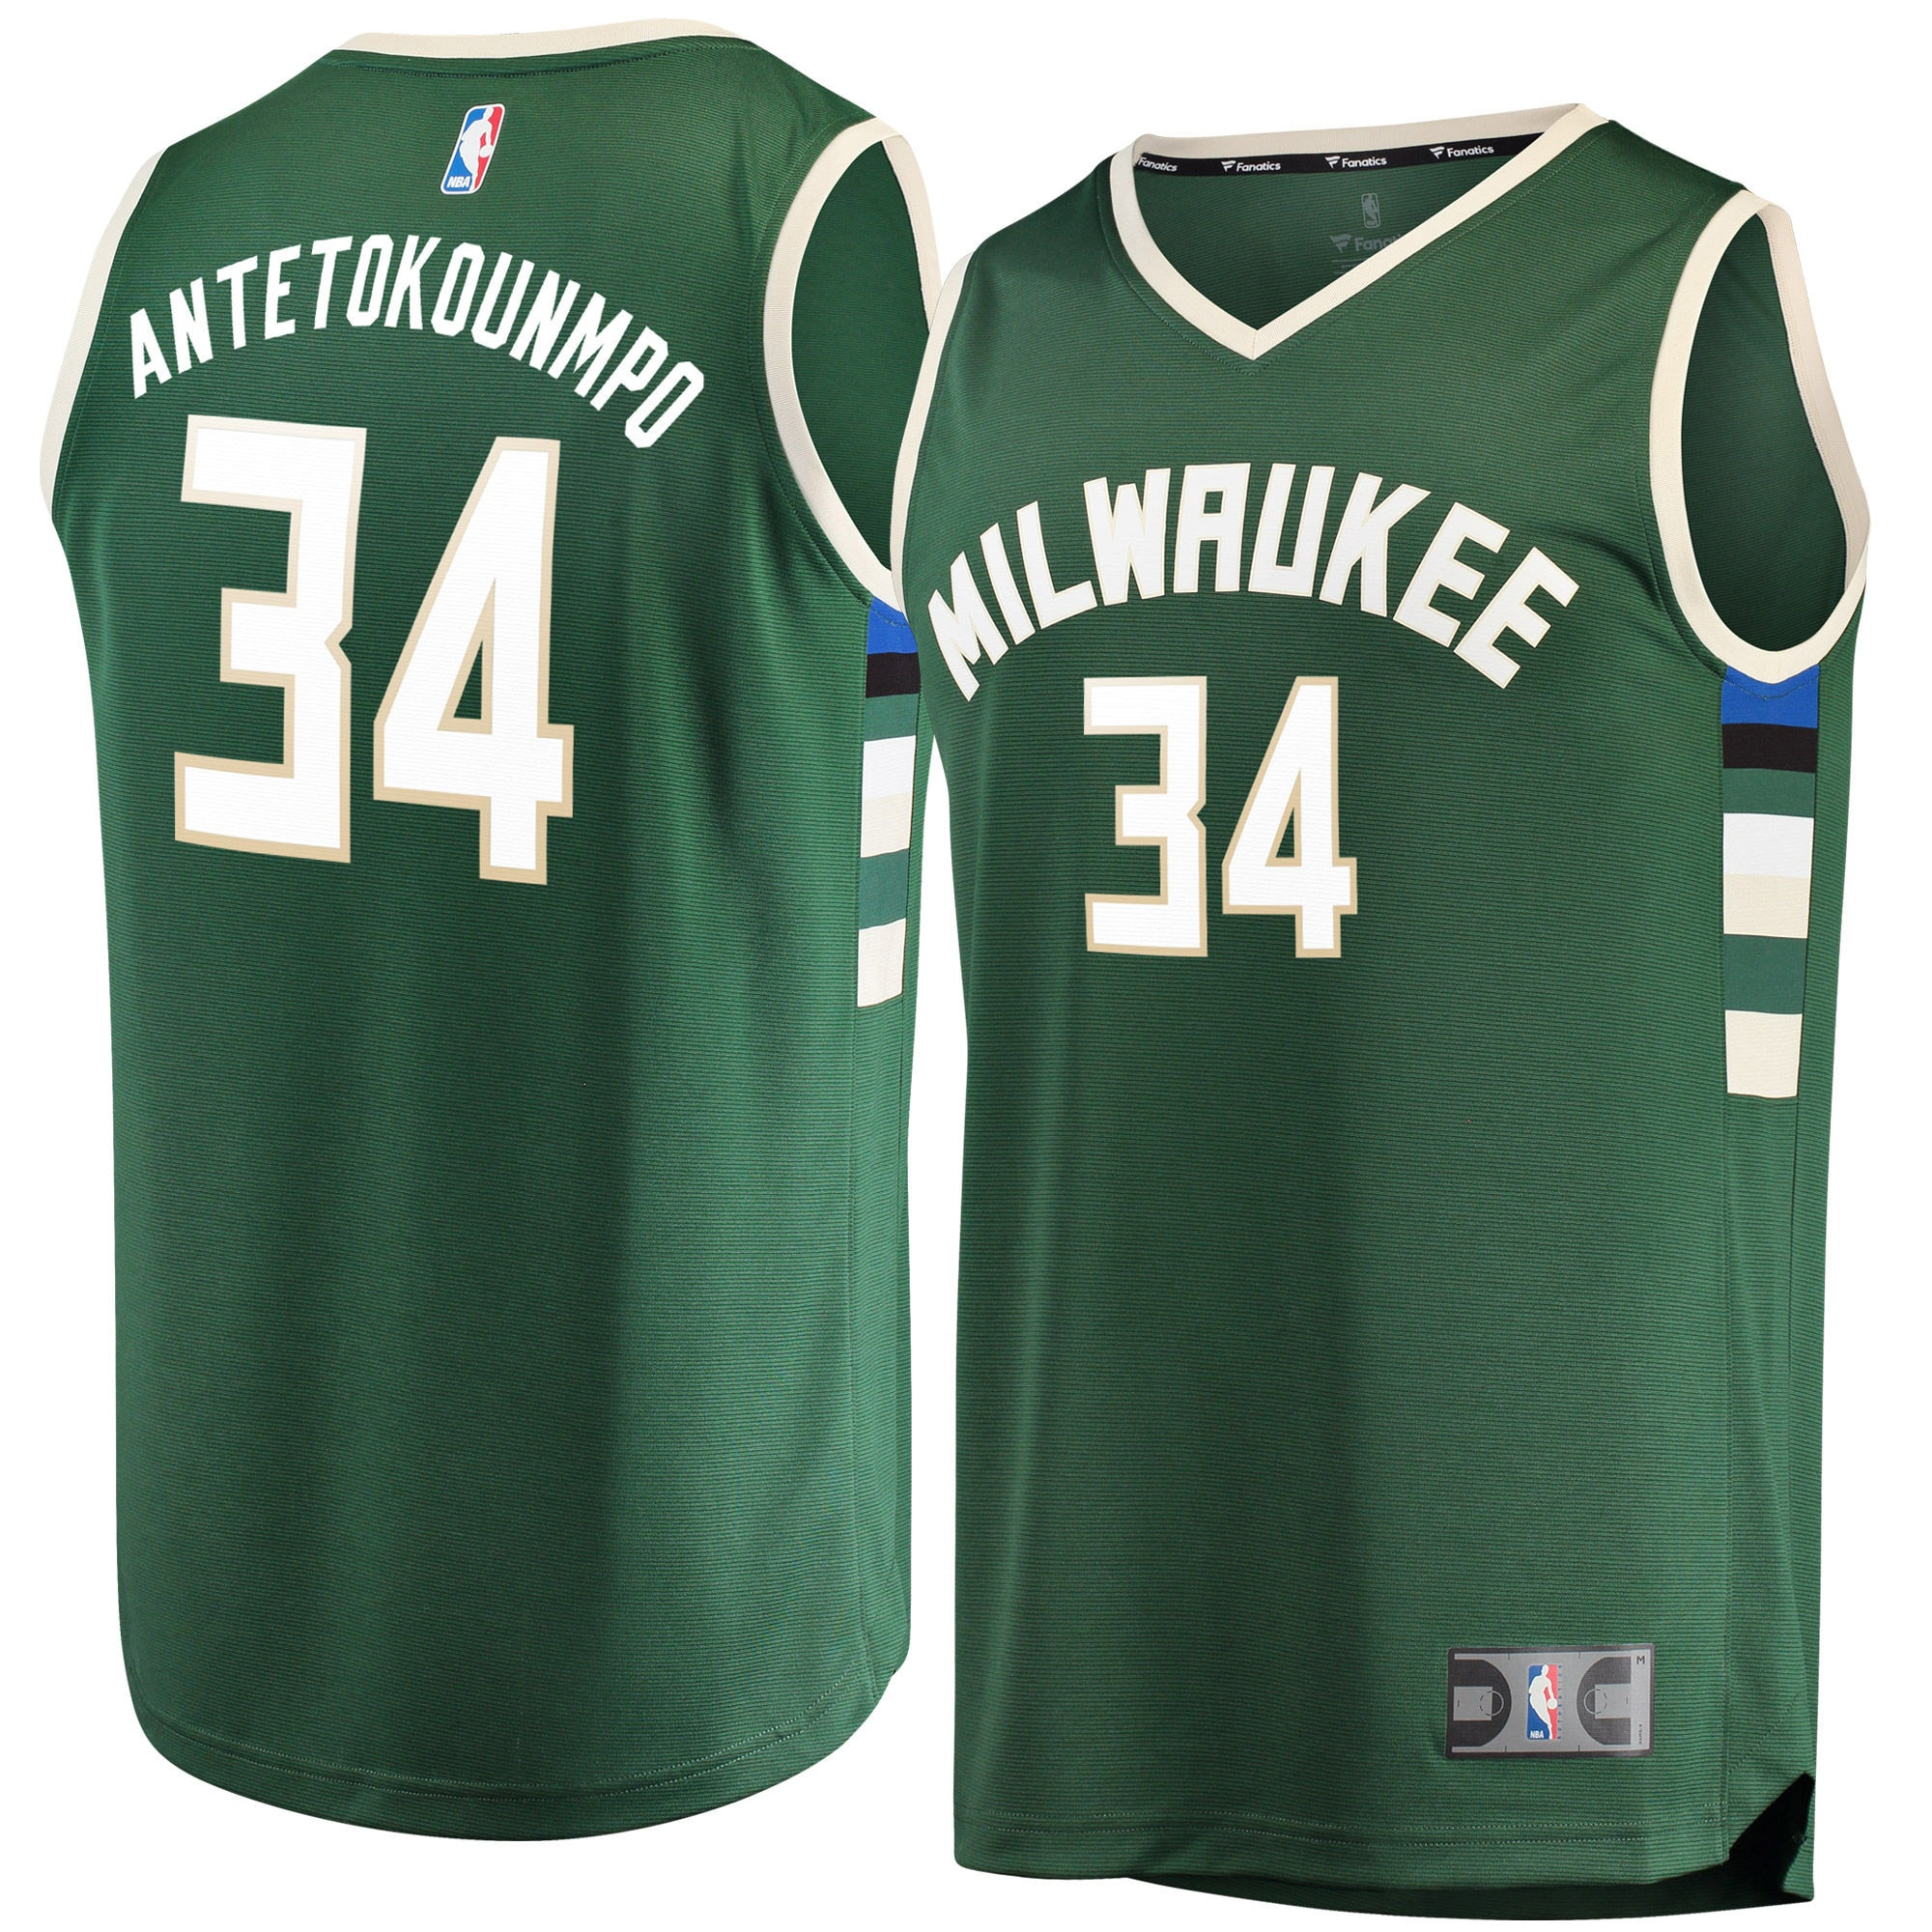 Antetokounmpo Milwaukee Bucks Fanatics Branded Fast Break Replica Player Jersey Green - Icon Edition